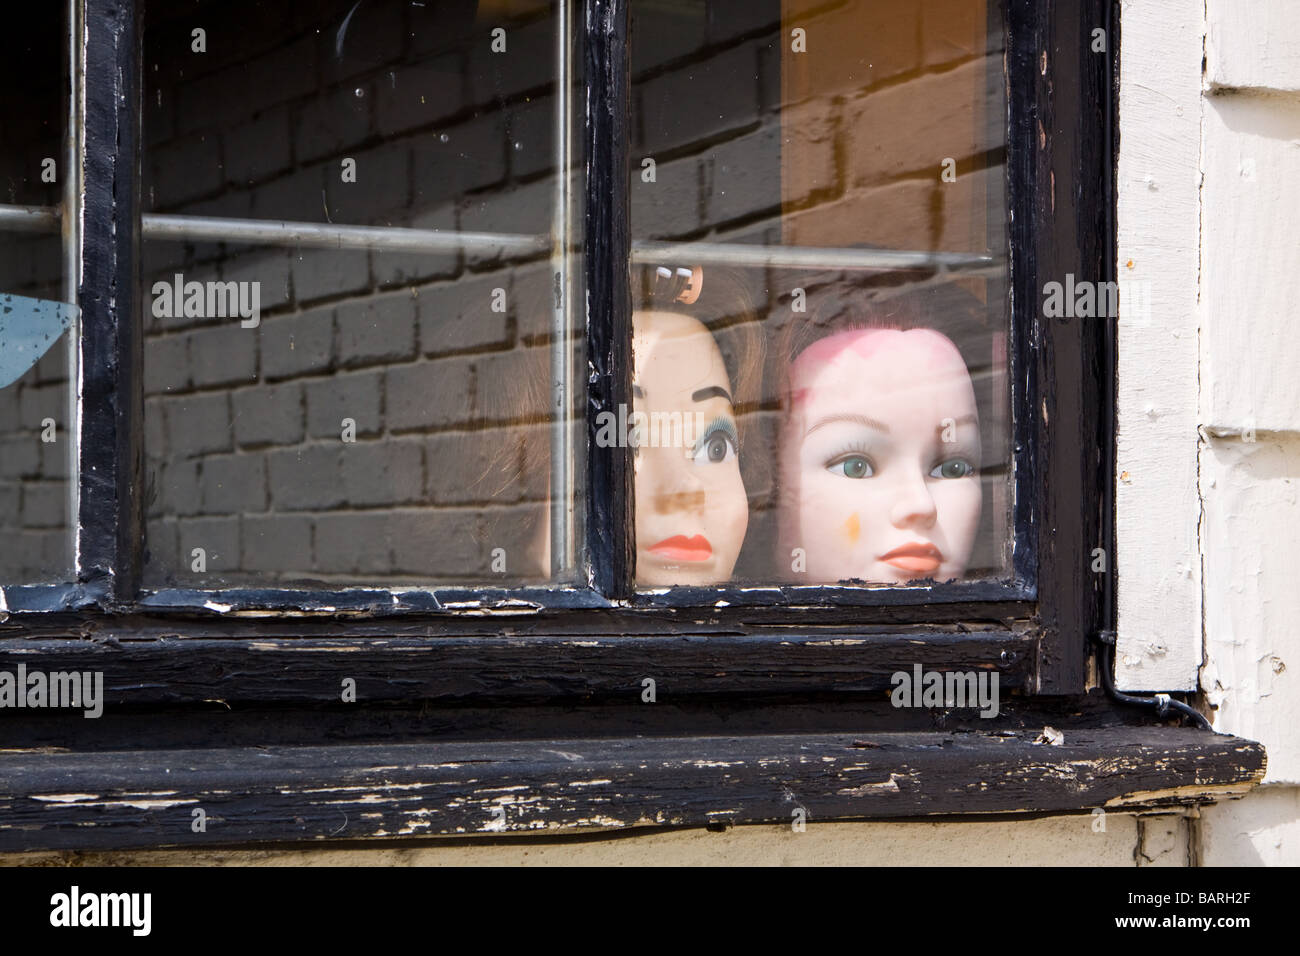 Mannequin Heads Looking Through a Window - Stock Image